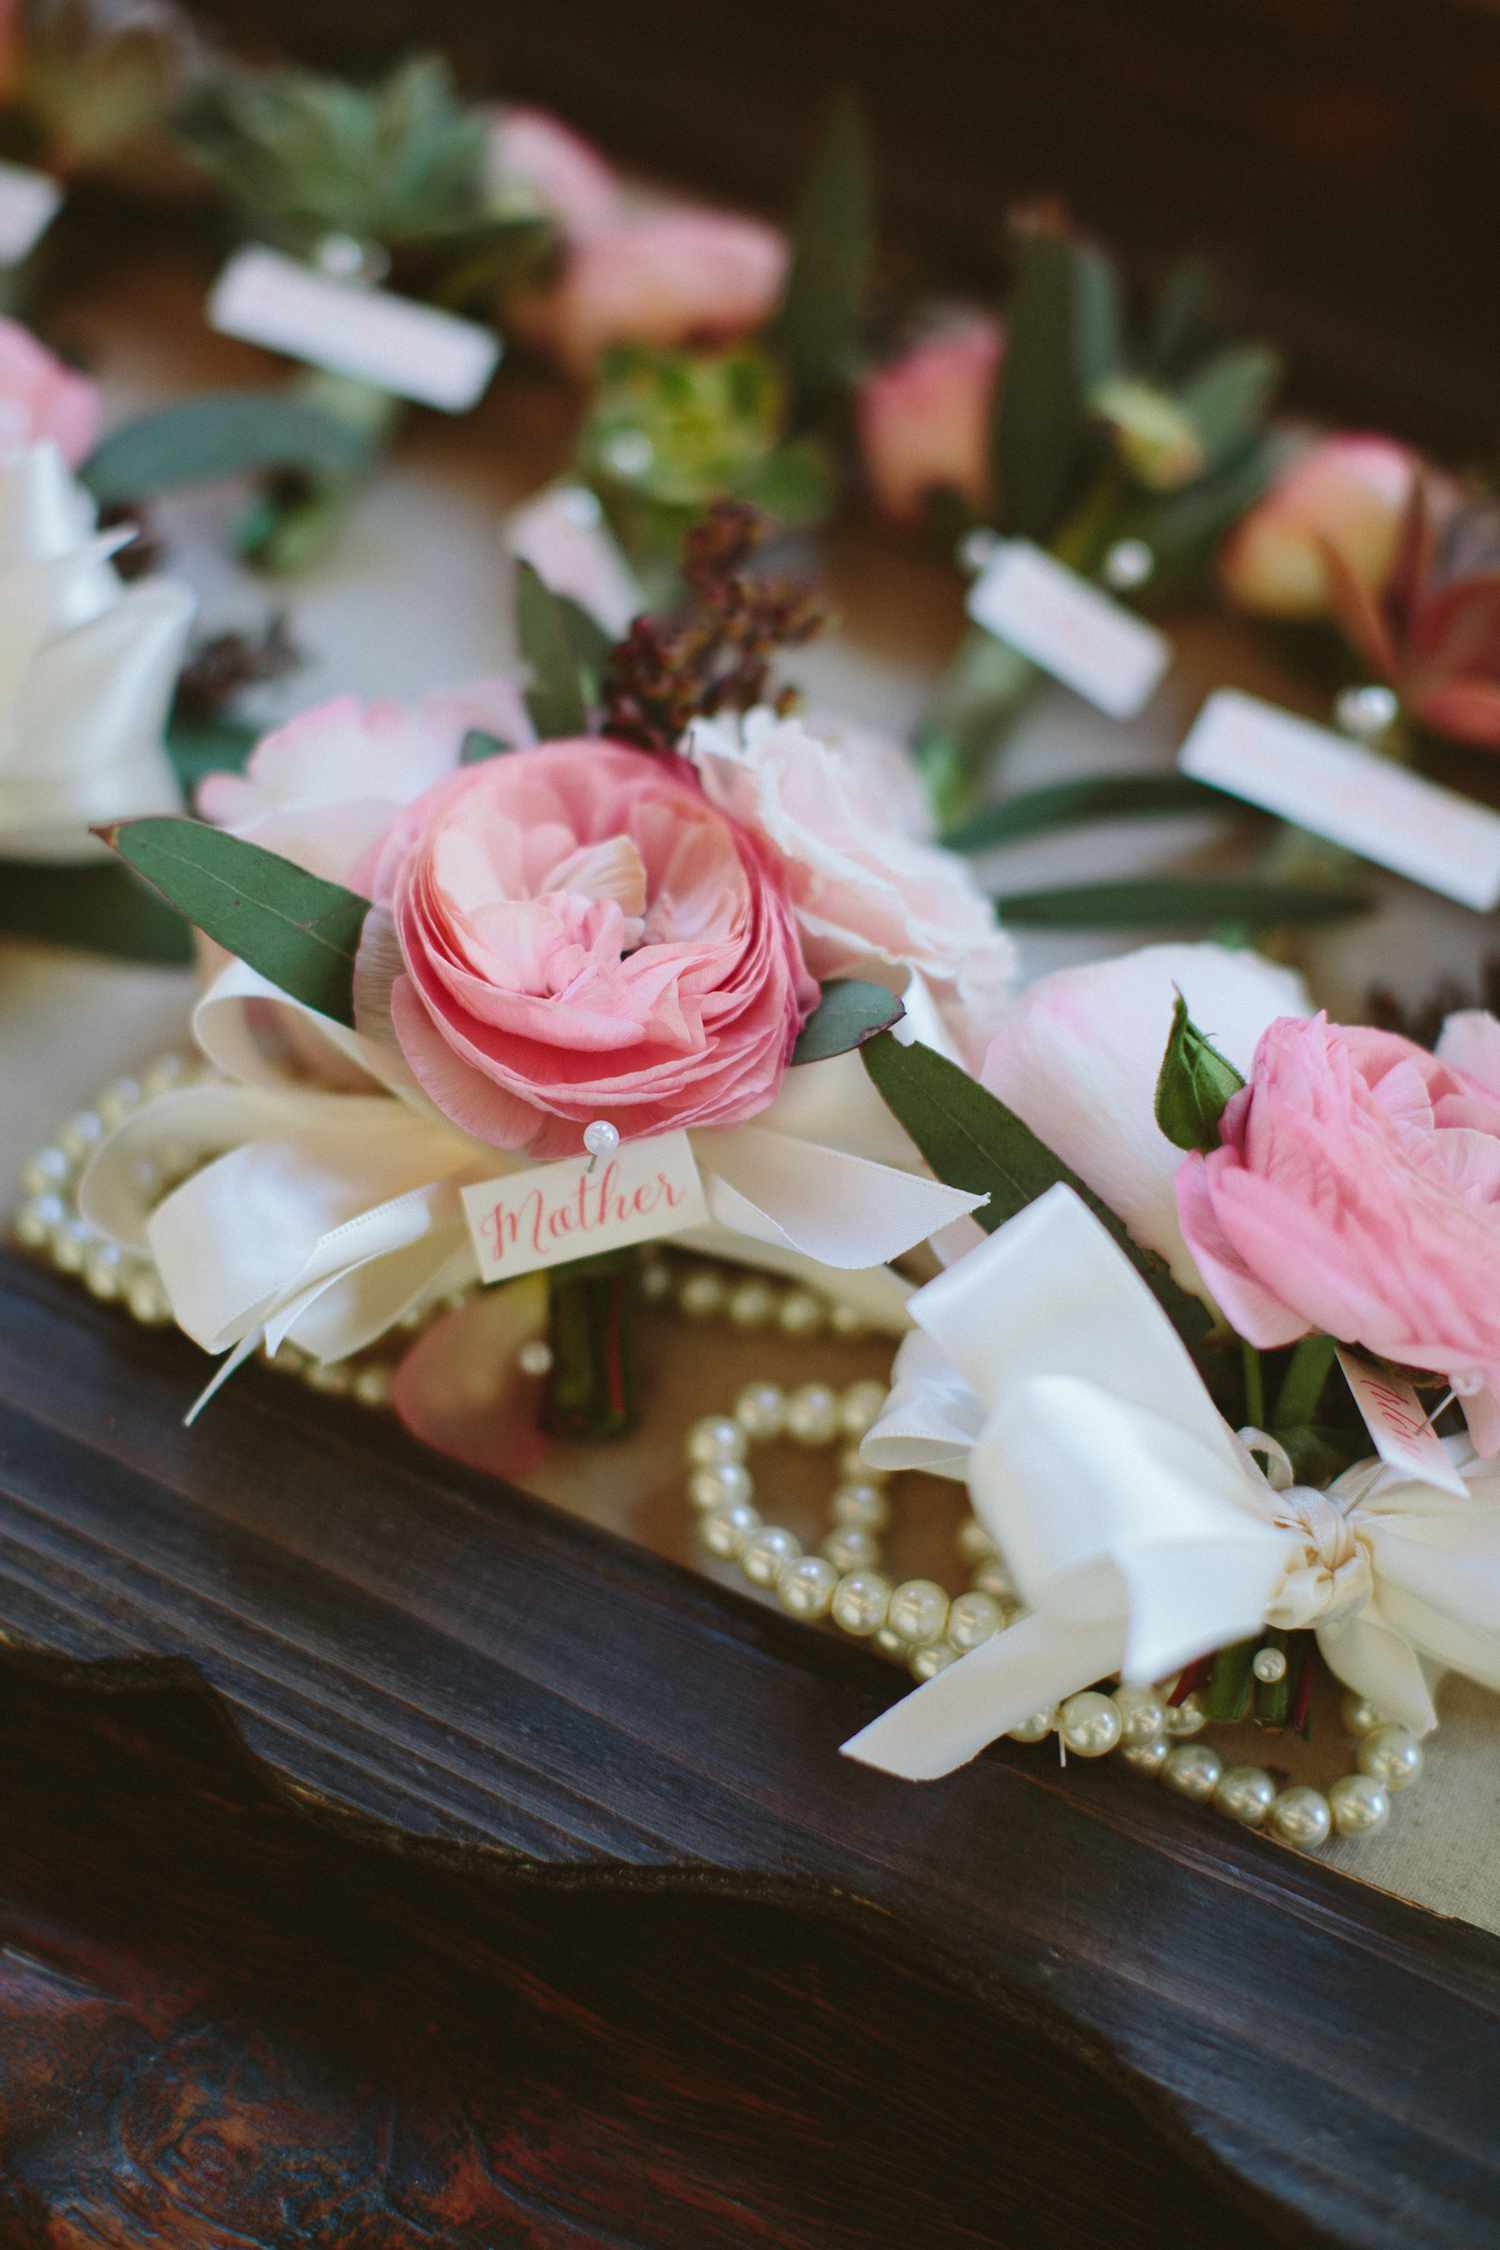 Mother's corsage pink flower